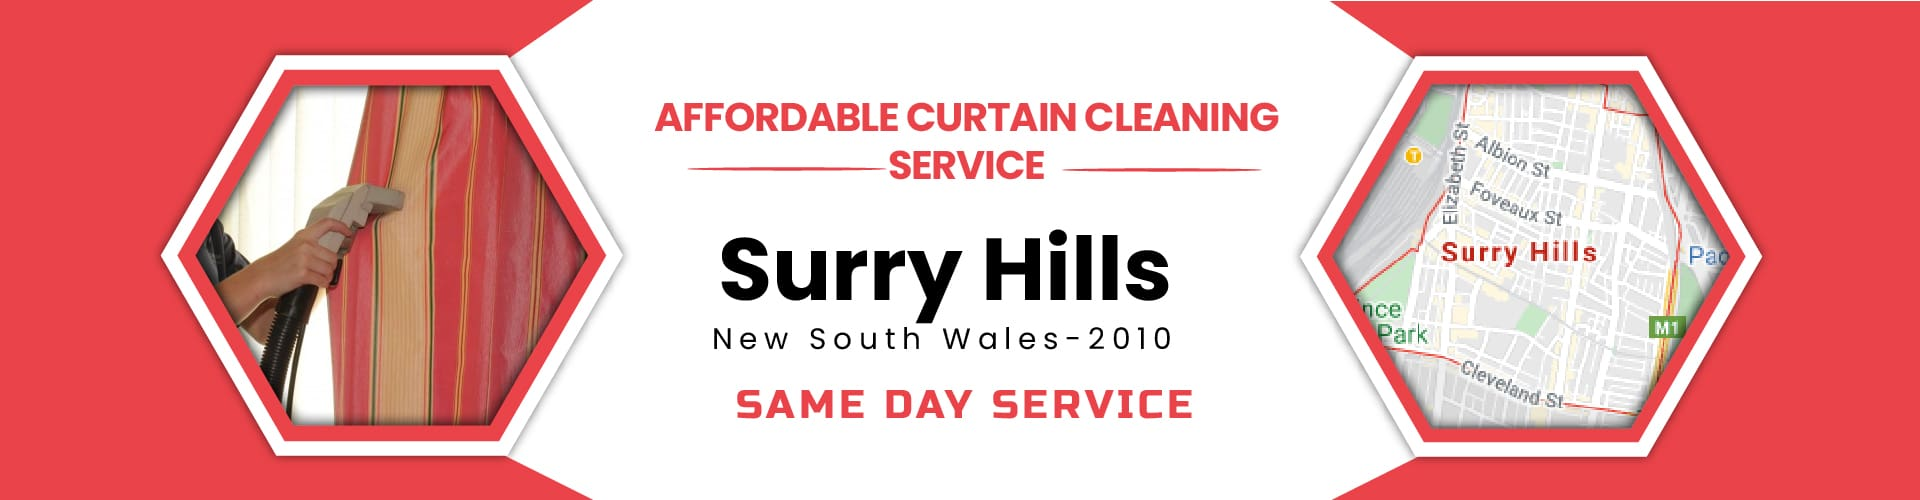 Curtain Cleaning Surry Hills